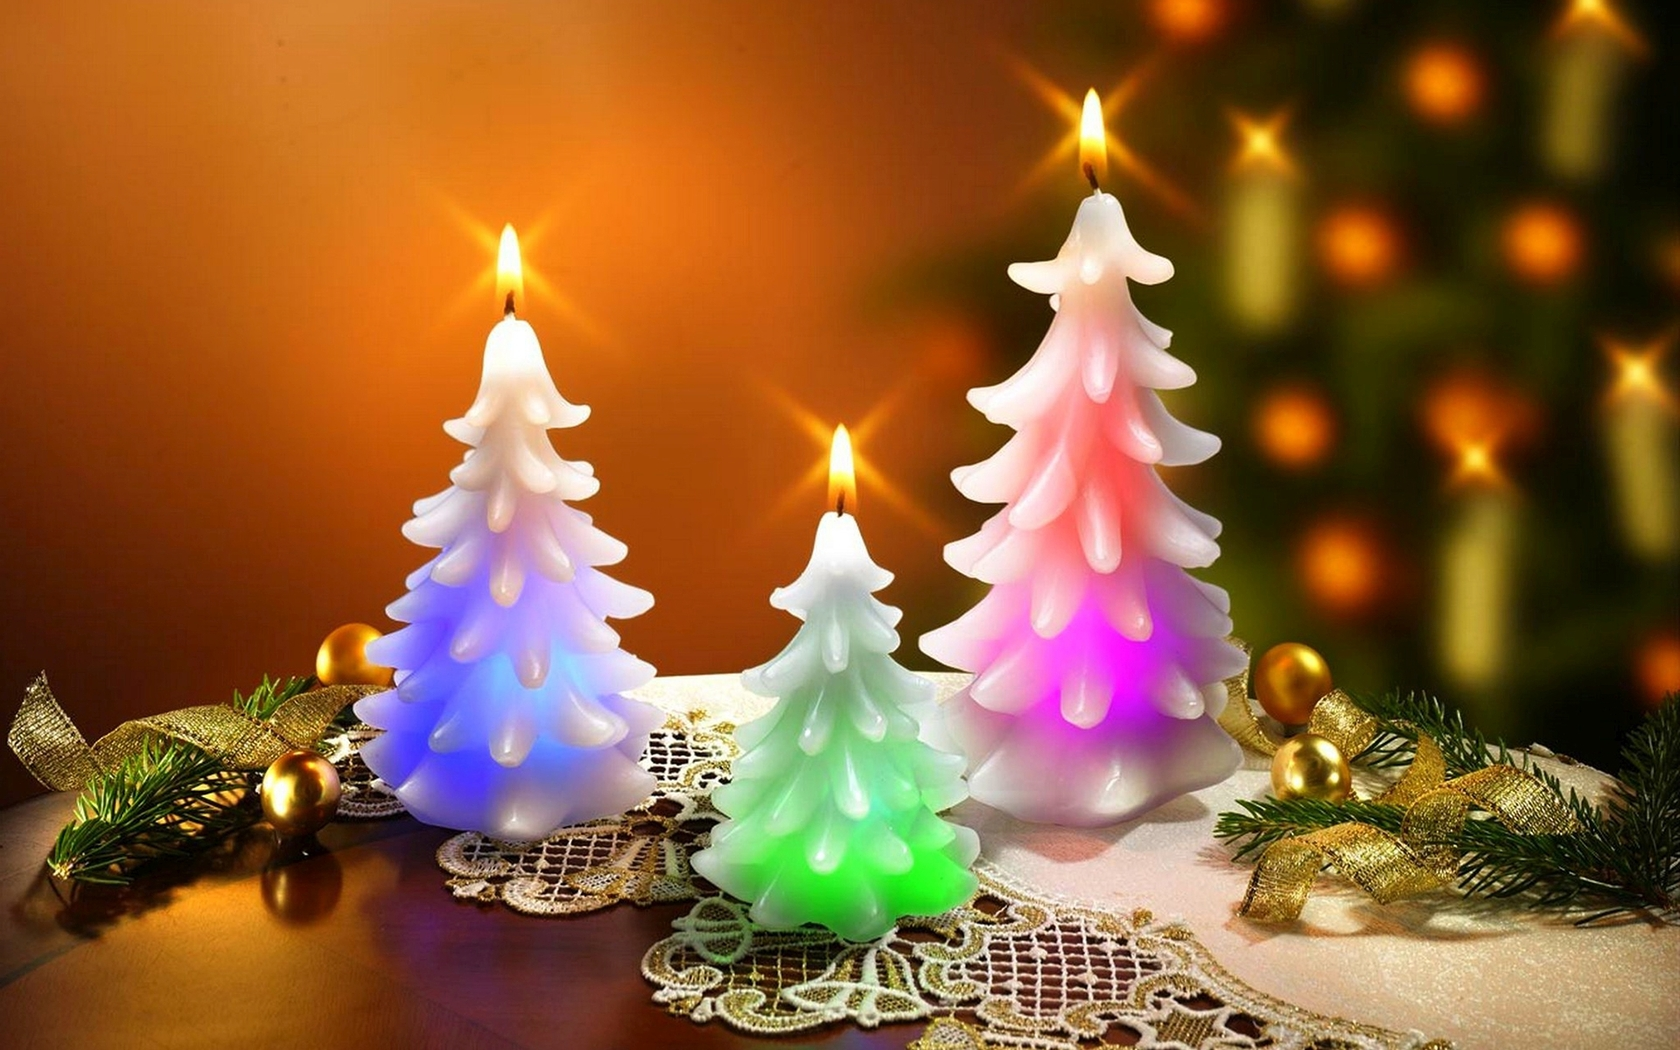 Candle Lights For Christmas Trees